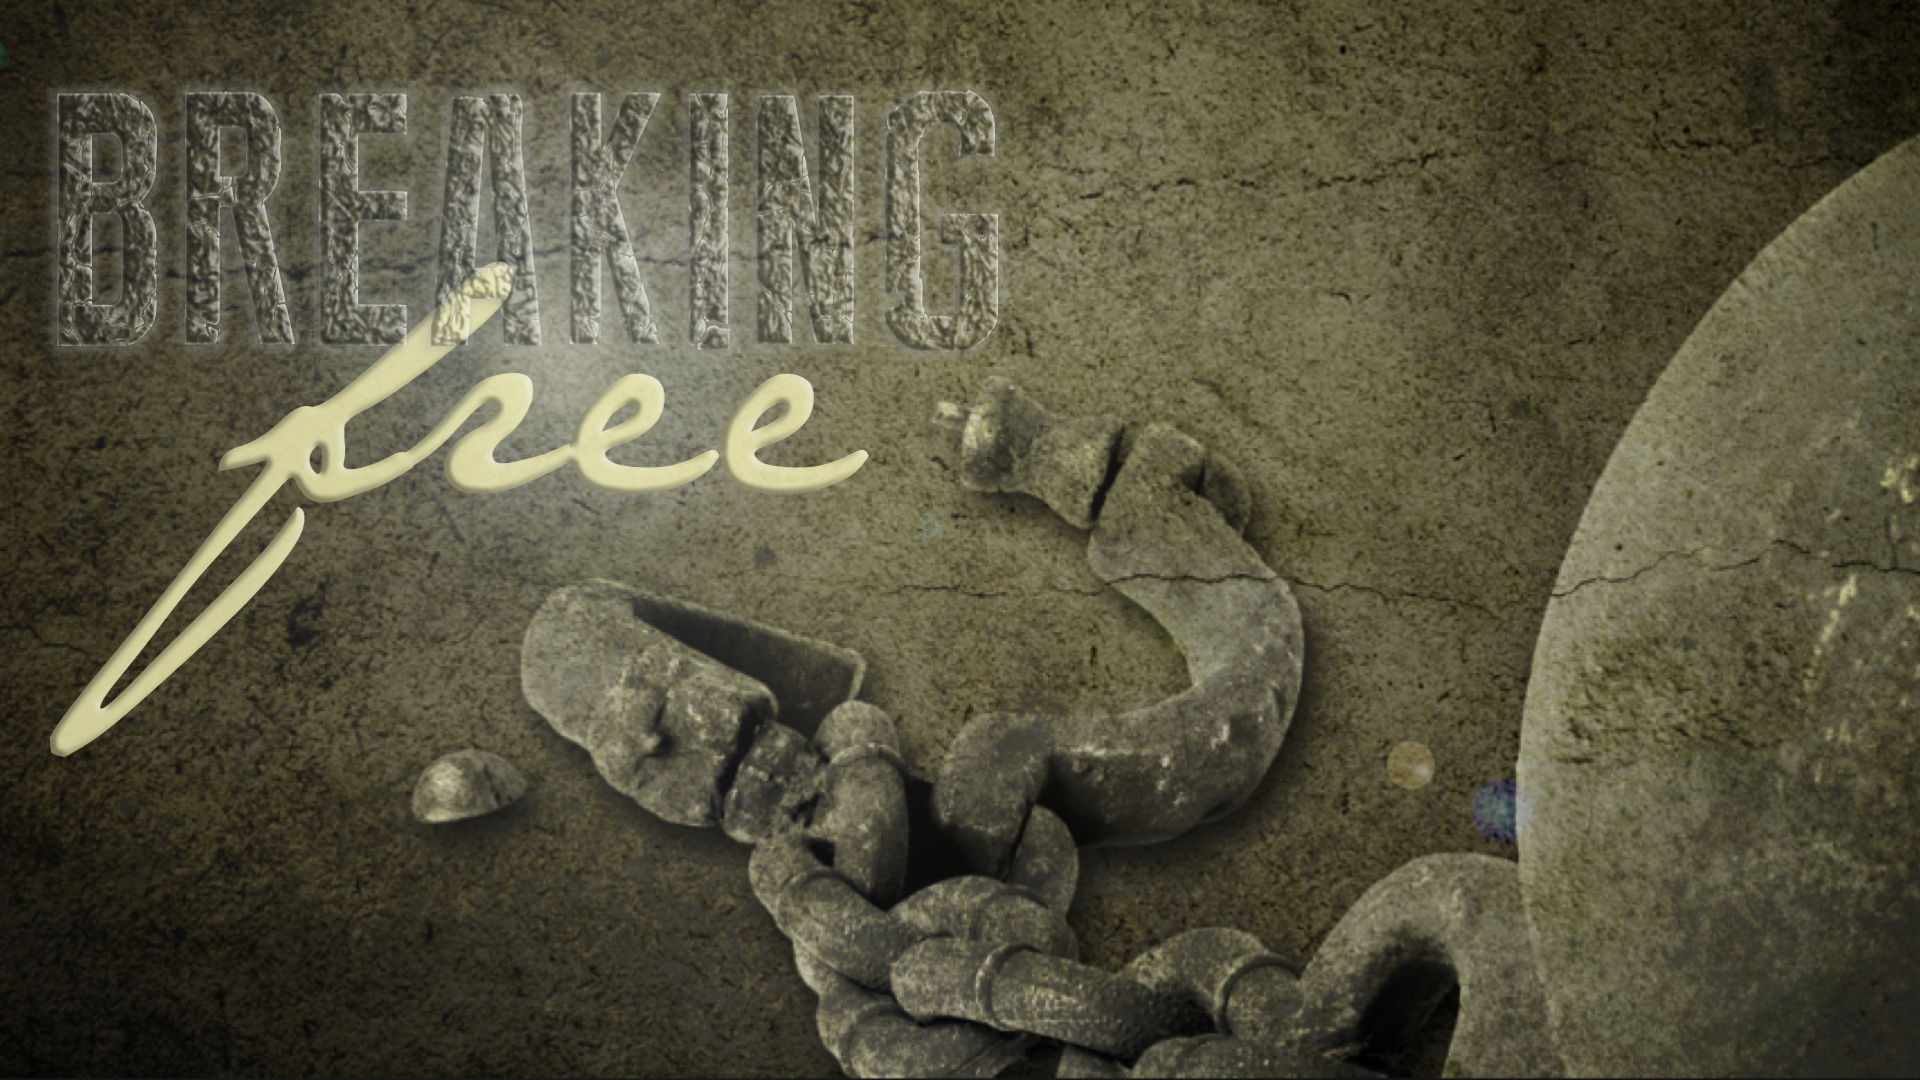 Breaking Free: HOW 2019 CAN BE YOUR YEAR OF FREEDOM | SERIES - BREAKING THE POWER OF LIES | 1.6.2019 | WATCHBREAKING THE POWER OF ADDICTION | 1.13.2019 | WATCHBREAKING THE POWER OF SEXUAL STRONGHOLDS | 1.20.2019 | WATCHBREAKING THE POWER OF FINANCIAL STRONGHOLDS | 1.27.2019 | WATCH | LISTEN